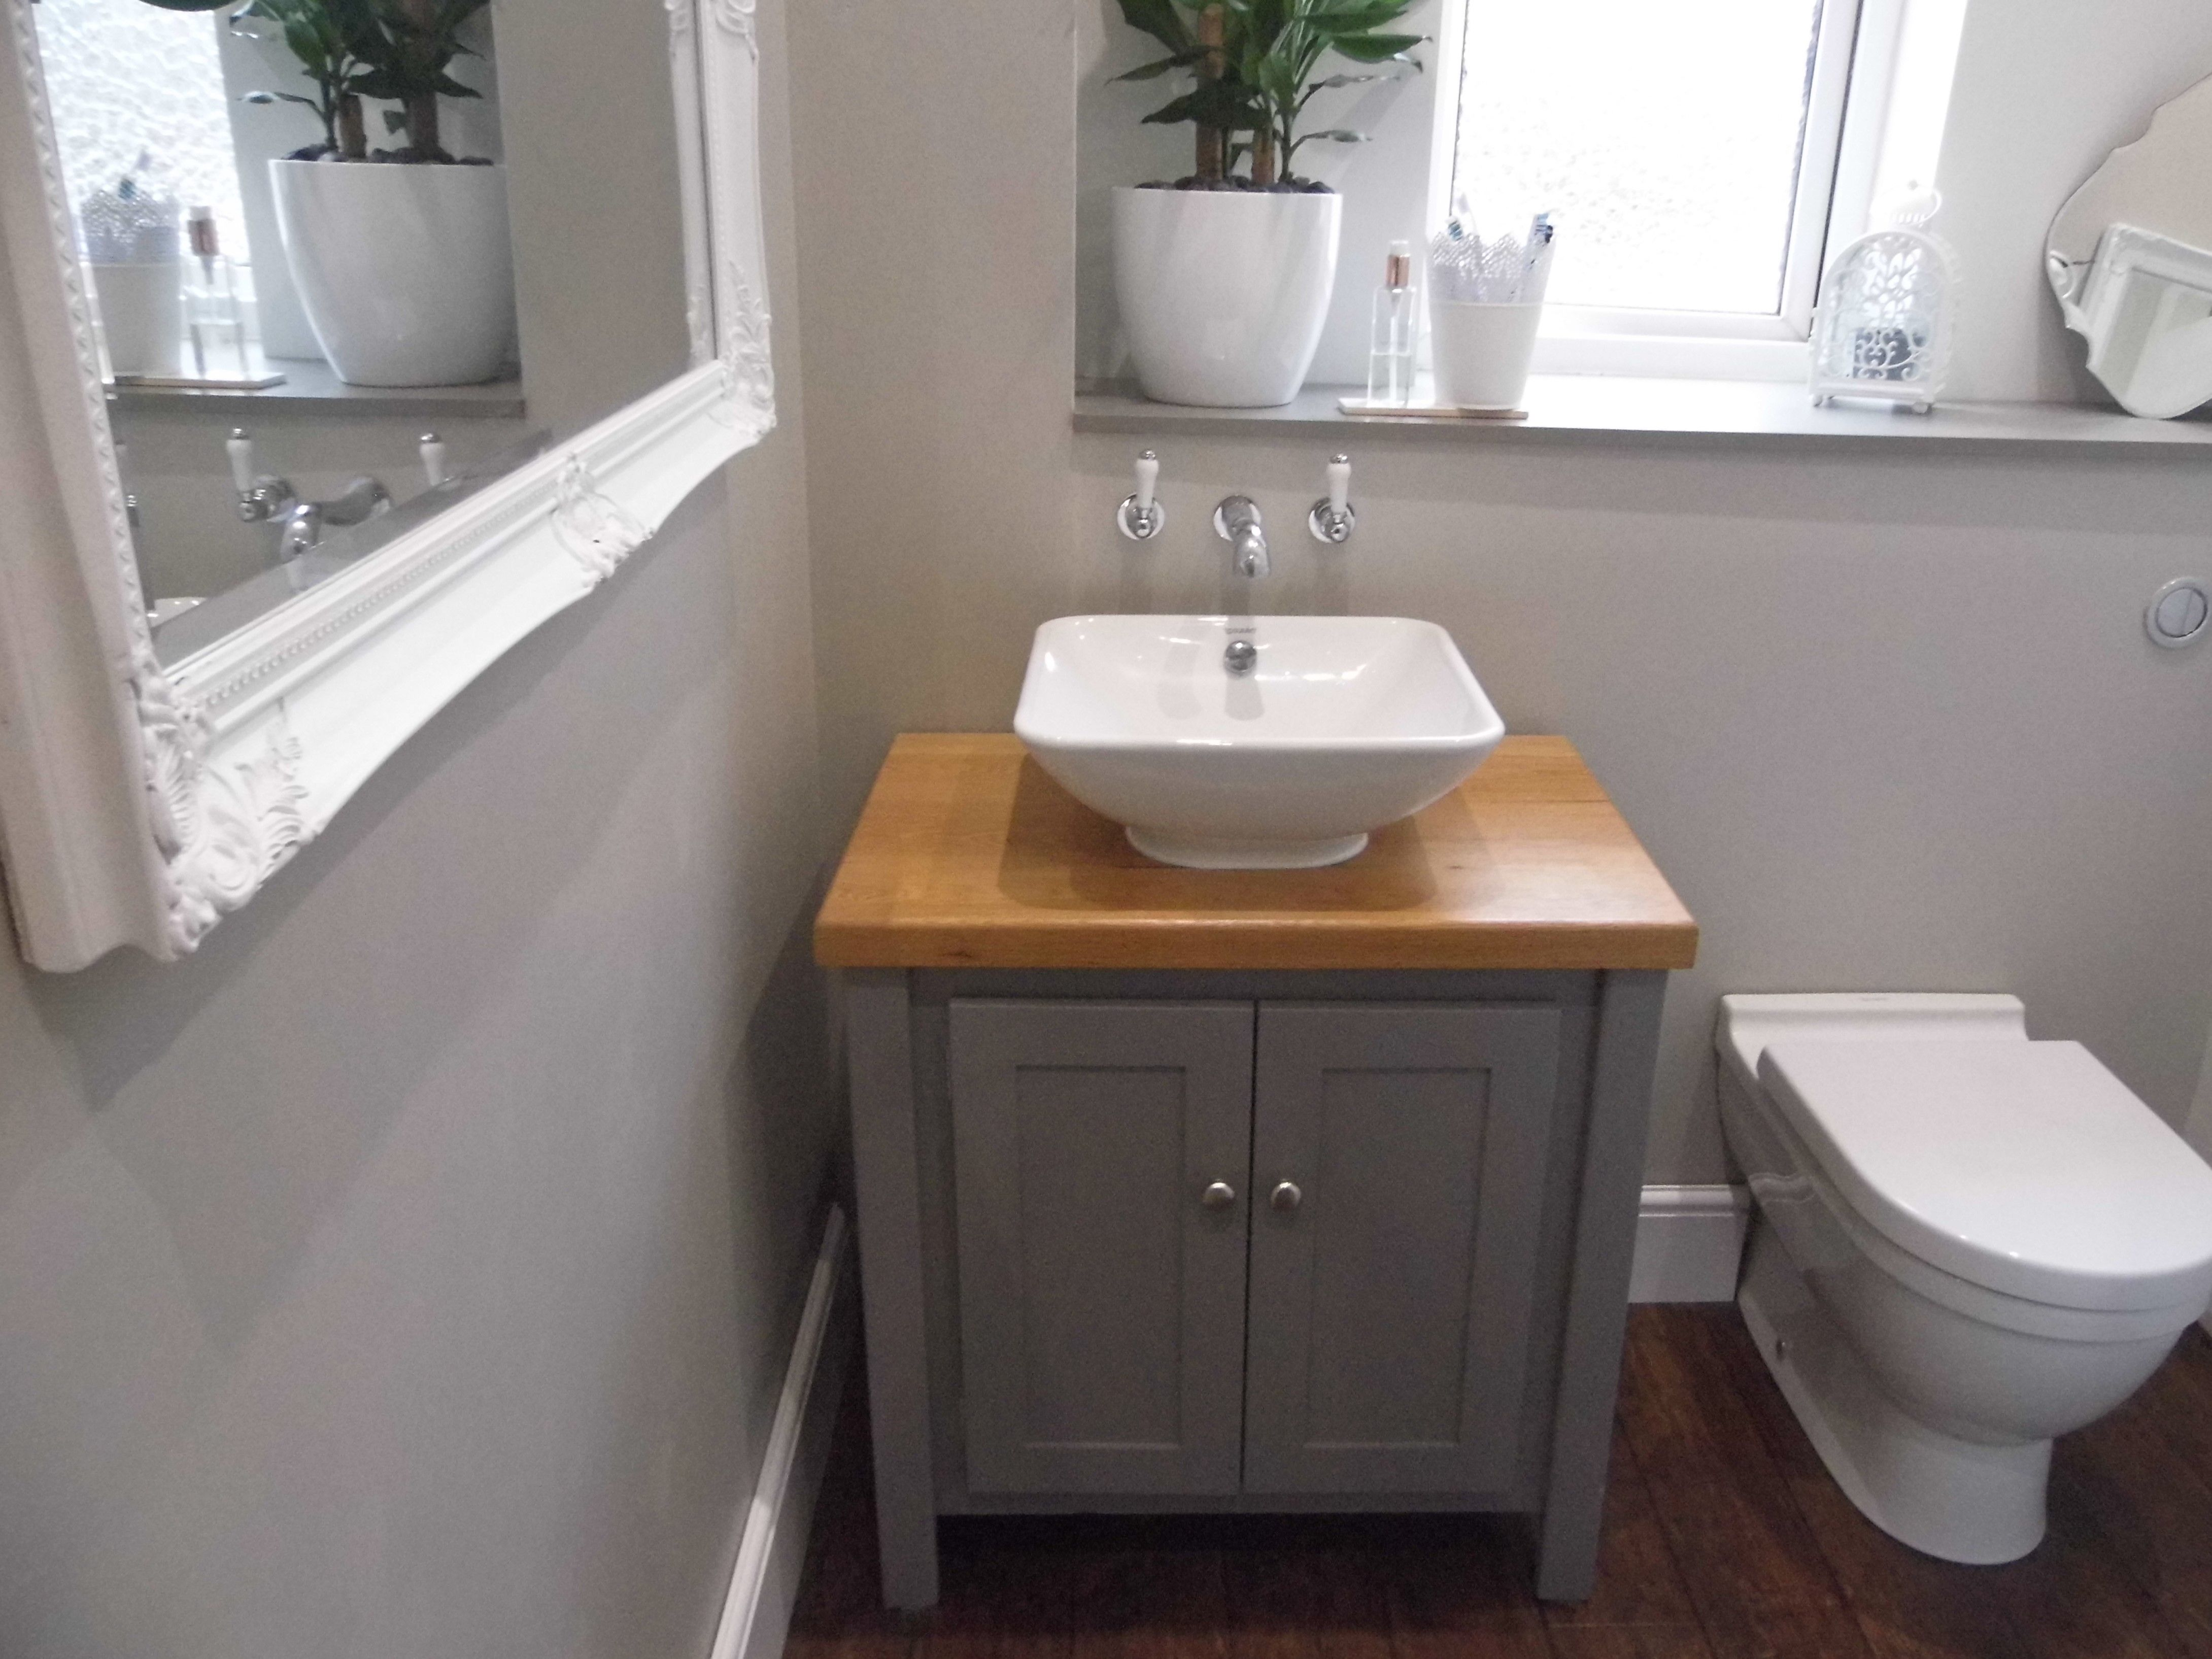 Aspenn furniture vanity unit painted with Farrow and Ball Molesbreath Walls Farrow and Ball Purbeck